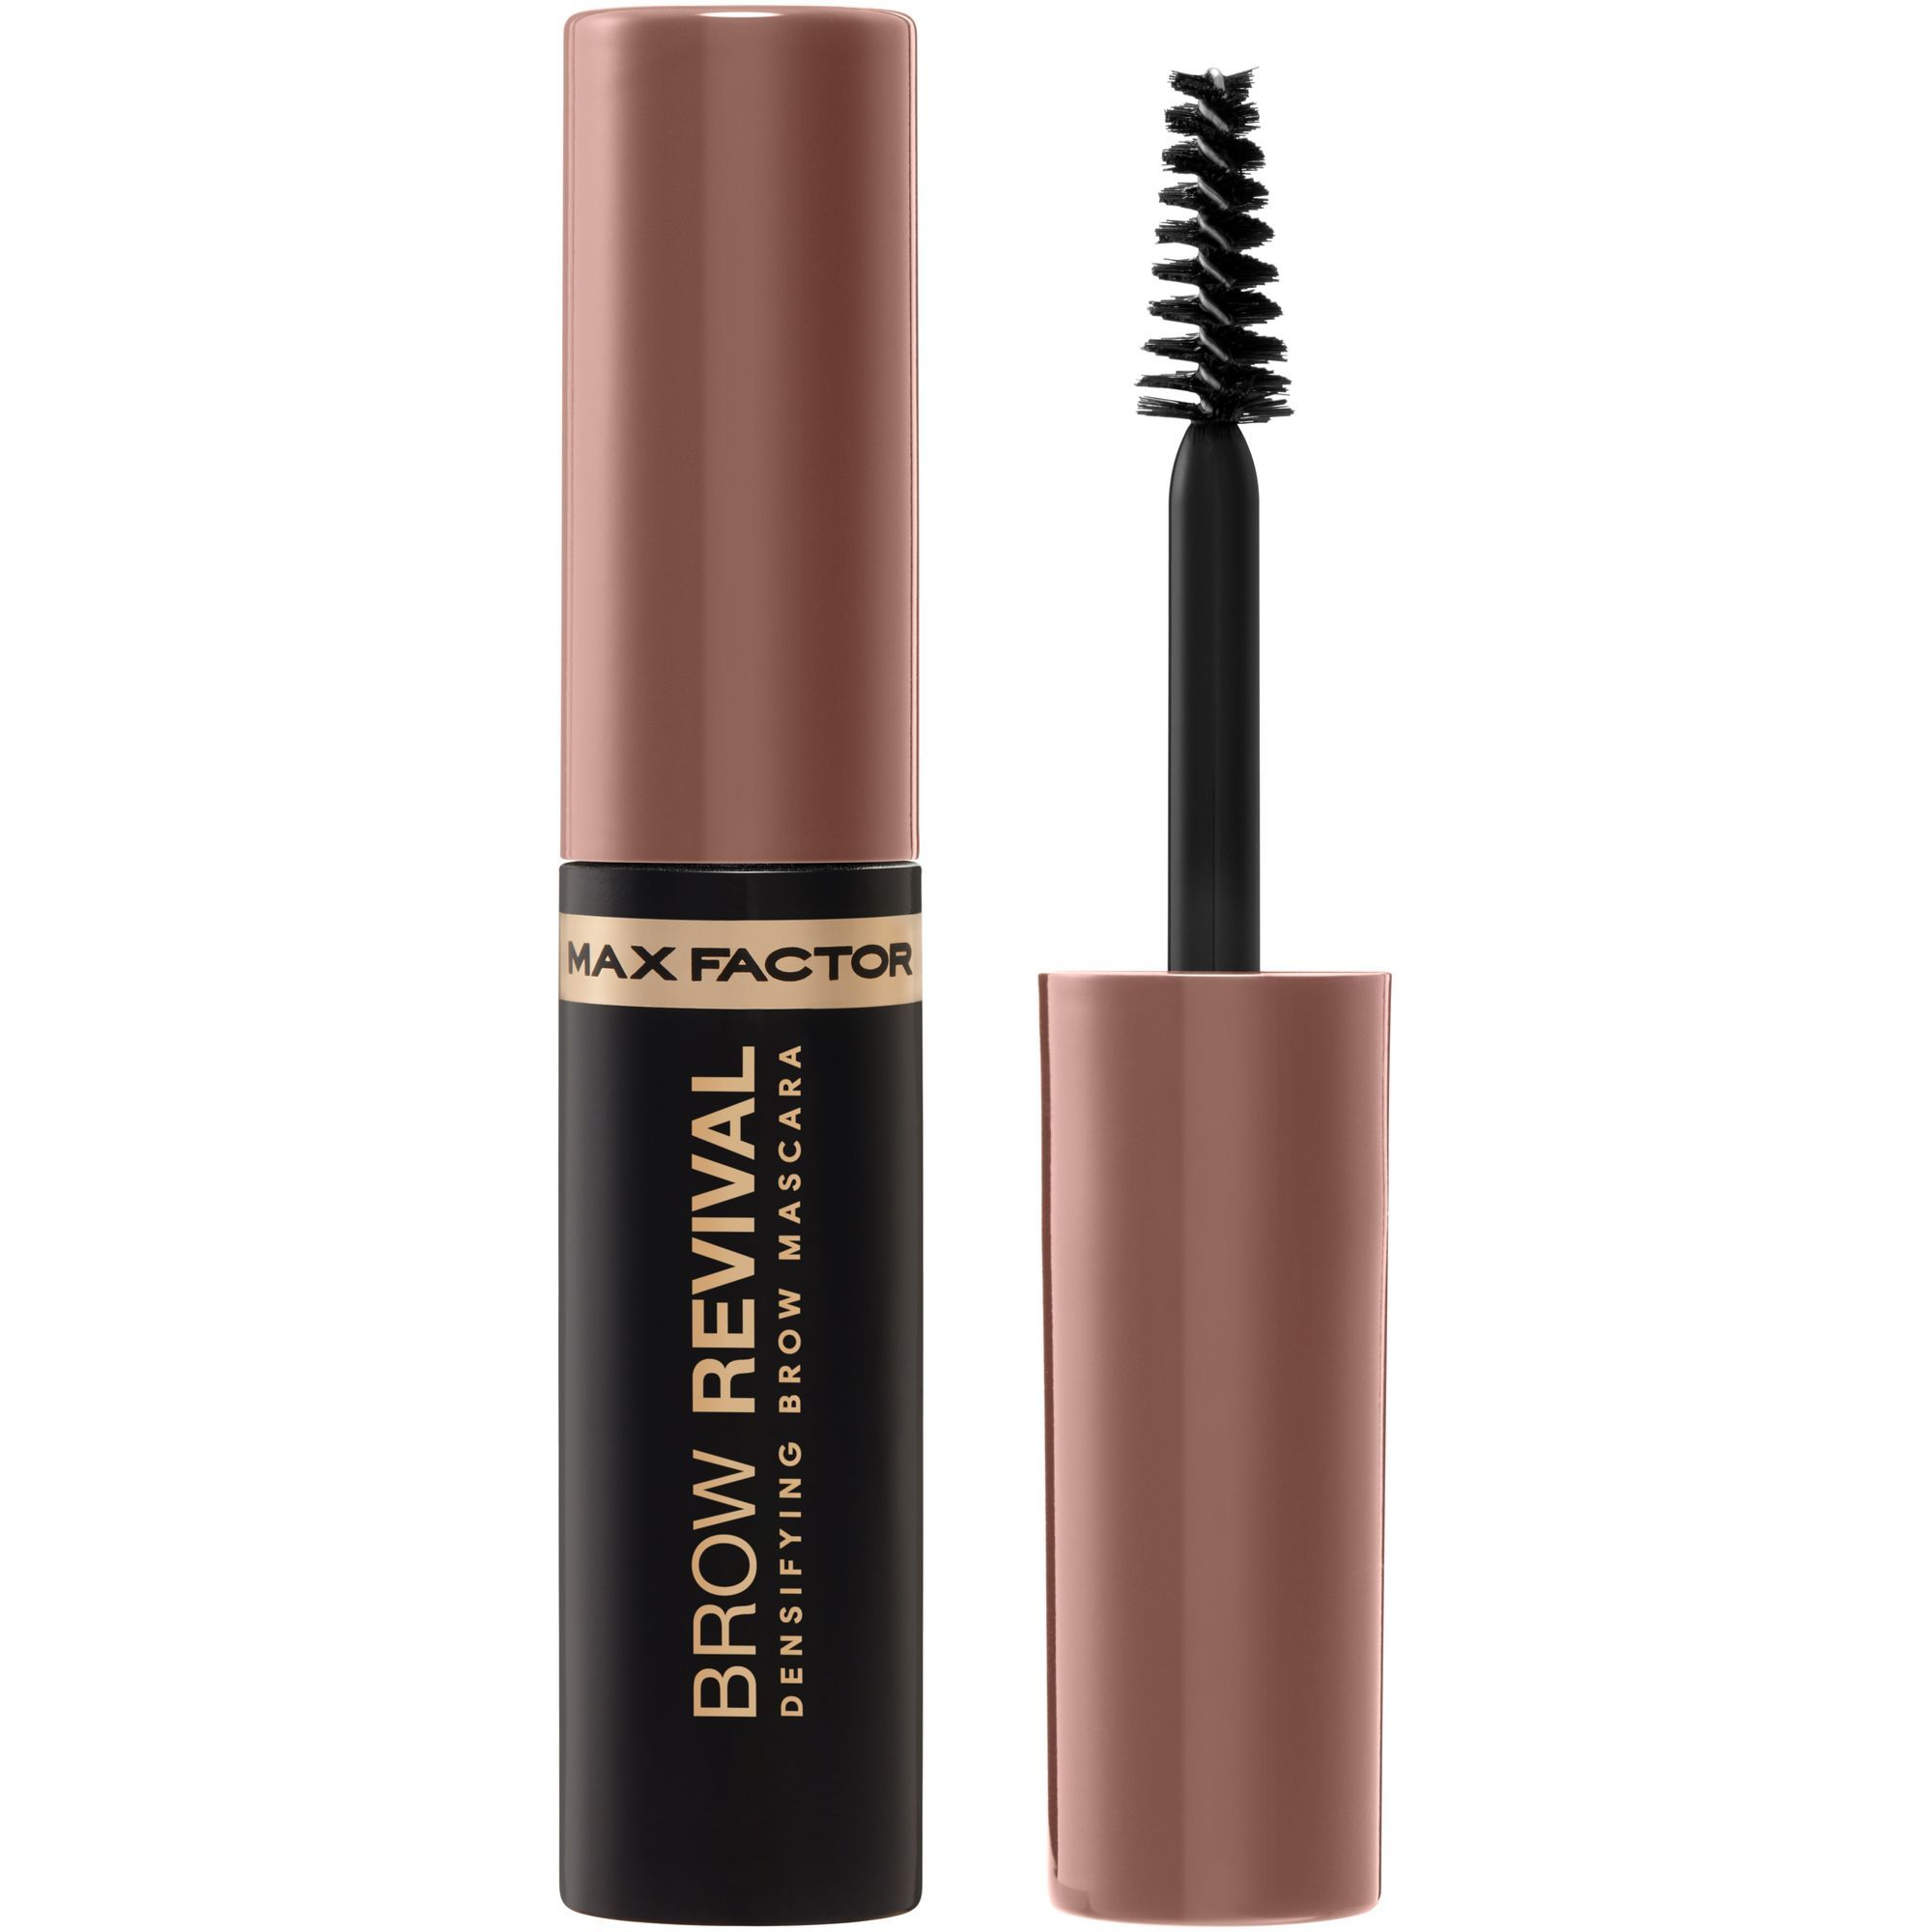 Тушь для бровей Max Factor Brow Revival Densifying Brow Mascara Тон 003 brown